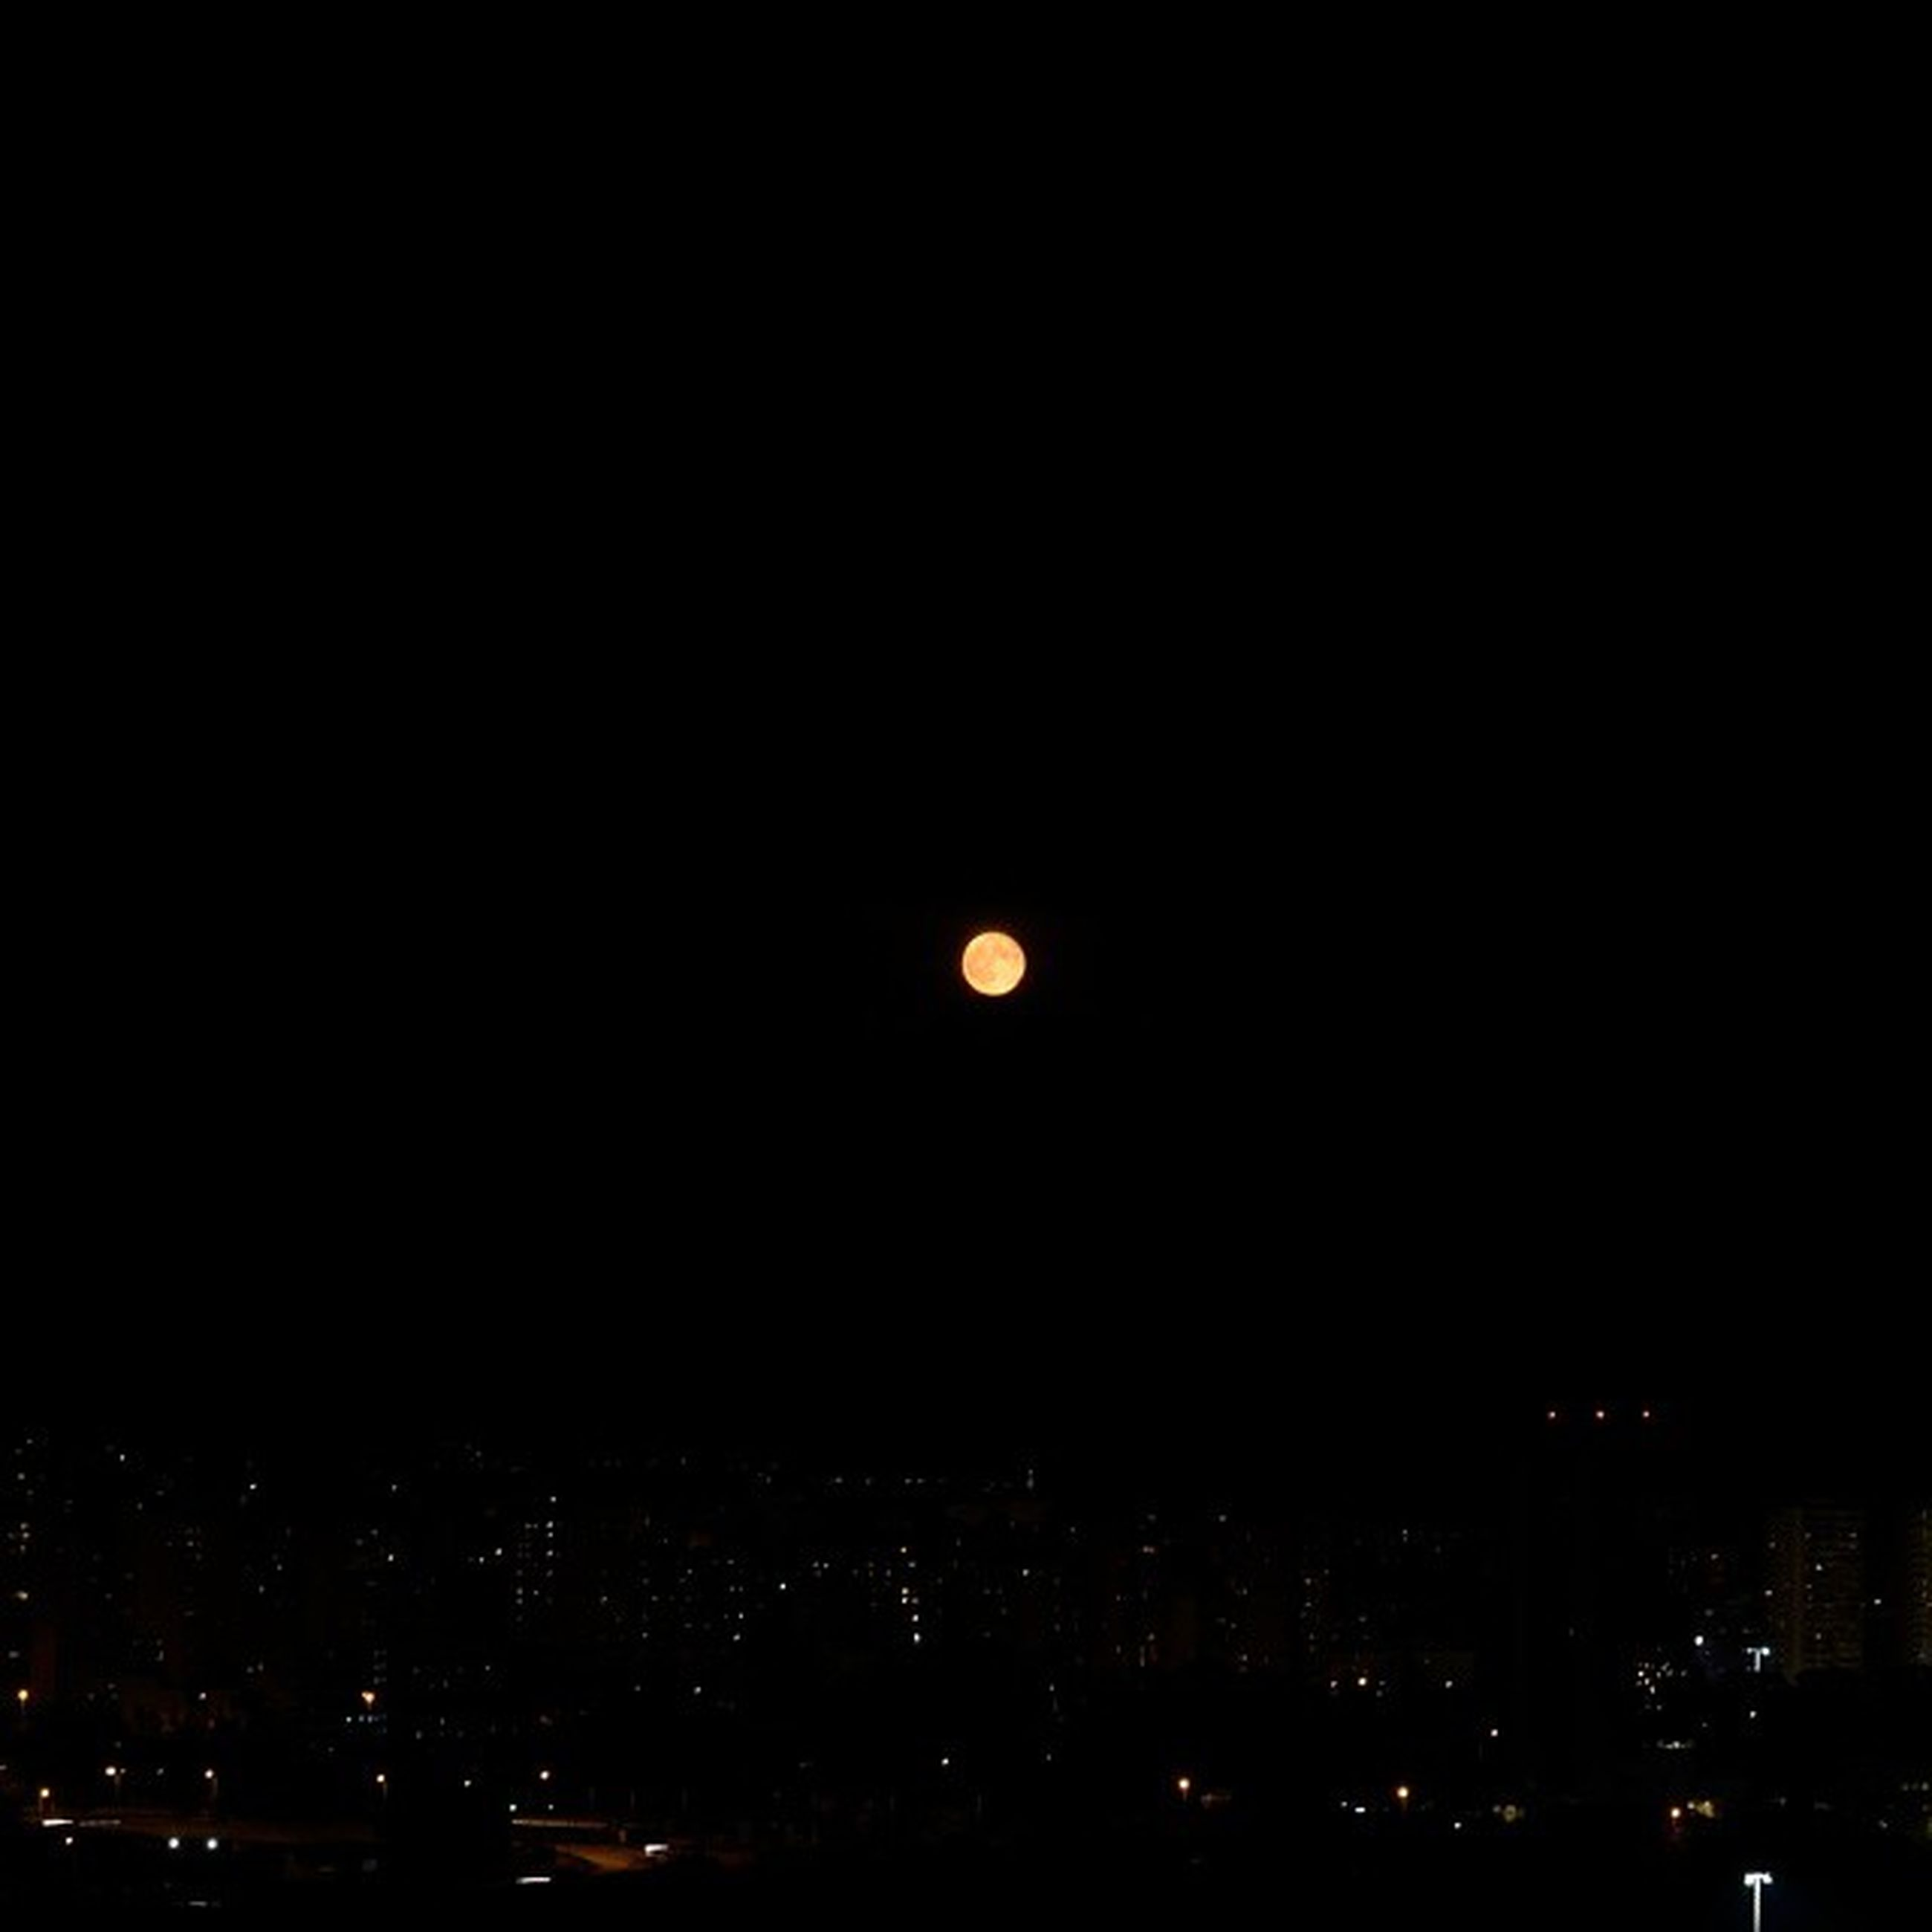 night, illuminated, city, cityscape, copy space, moon, dark, building exterior, architecture, built structure, sky, clear sky, full moon, scenics, outdoors, no people, silhouette, crowded, beauty in nature, nature